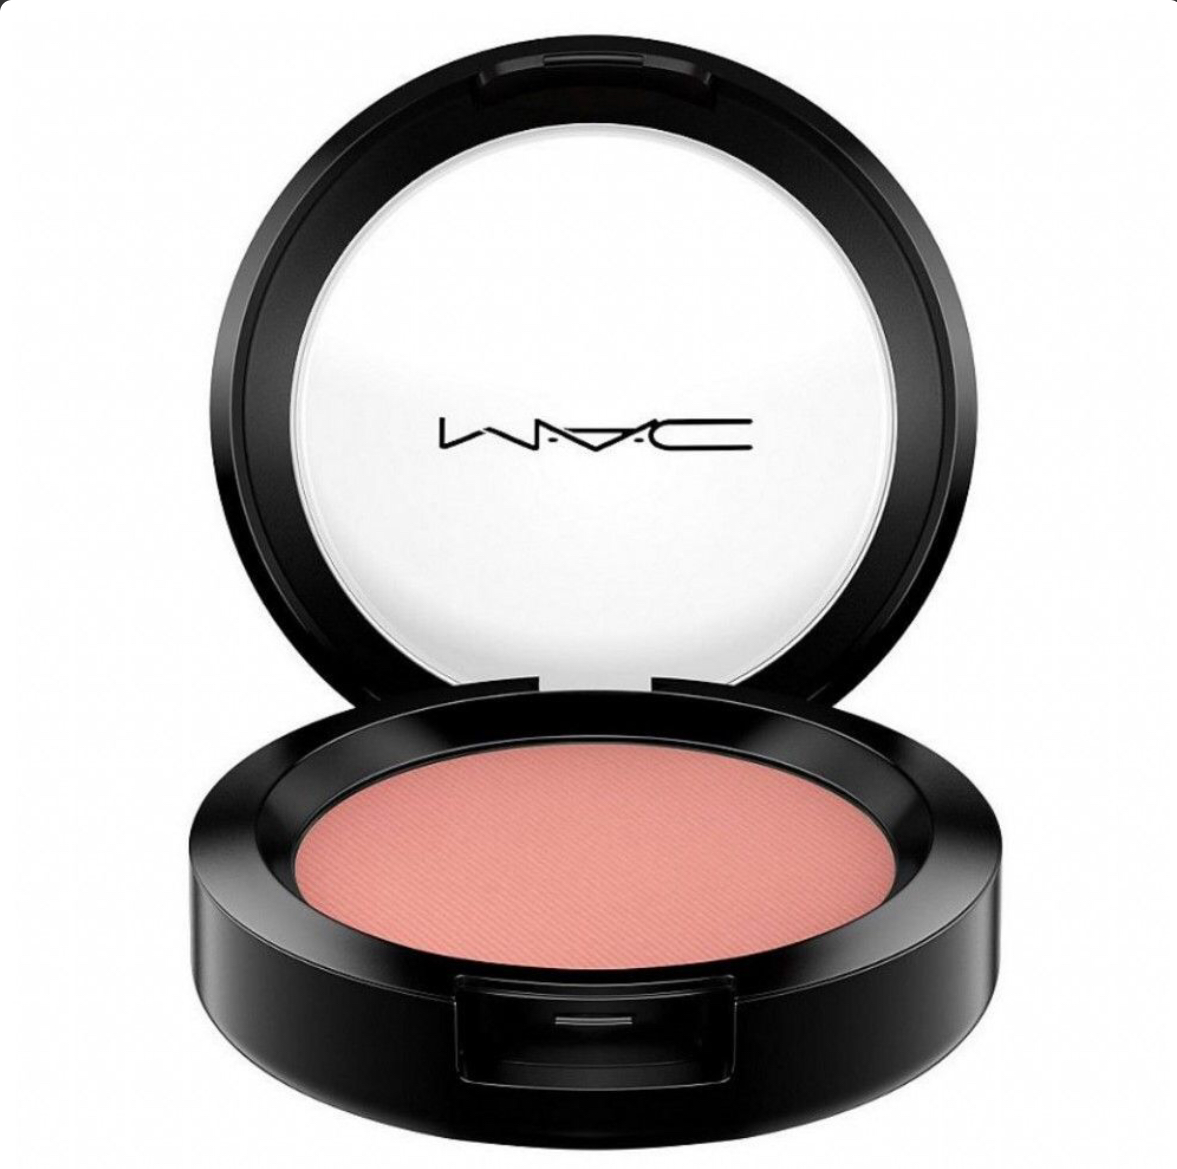 10 All-Time Popular MAC Blushes You Should Totally Try